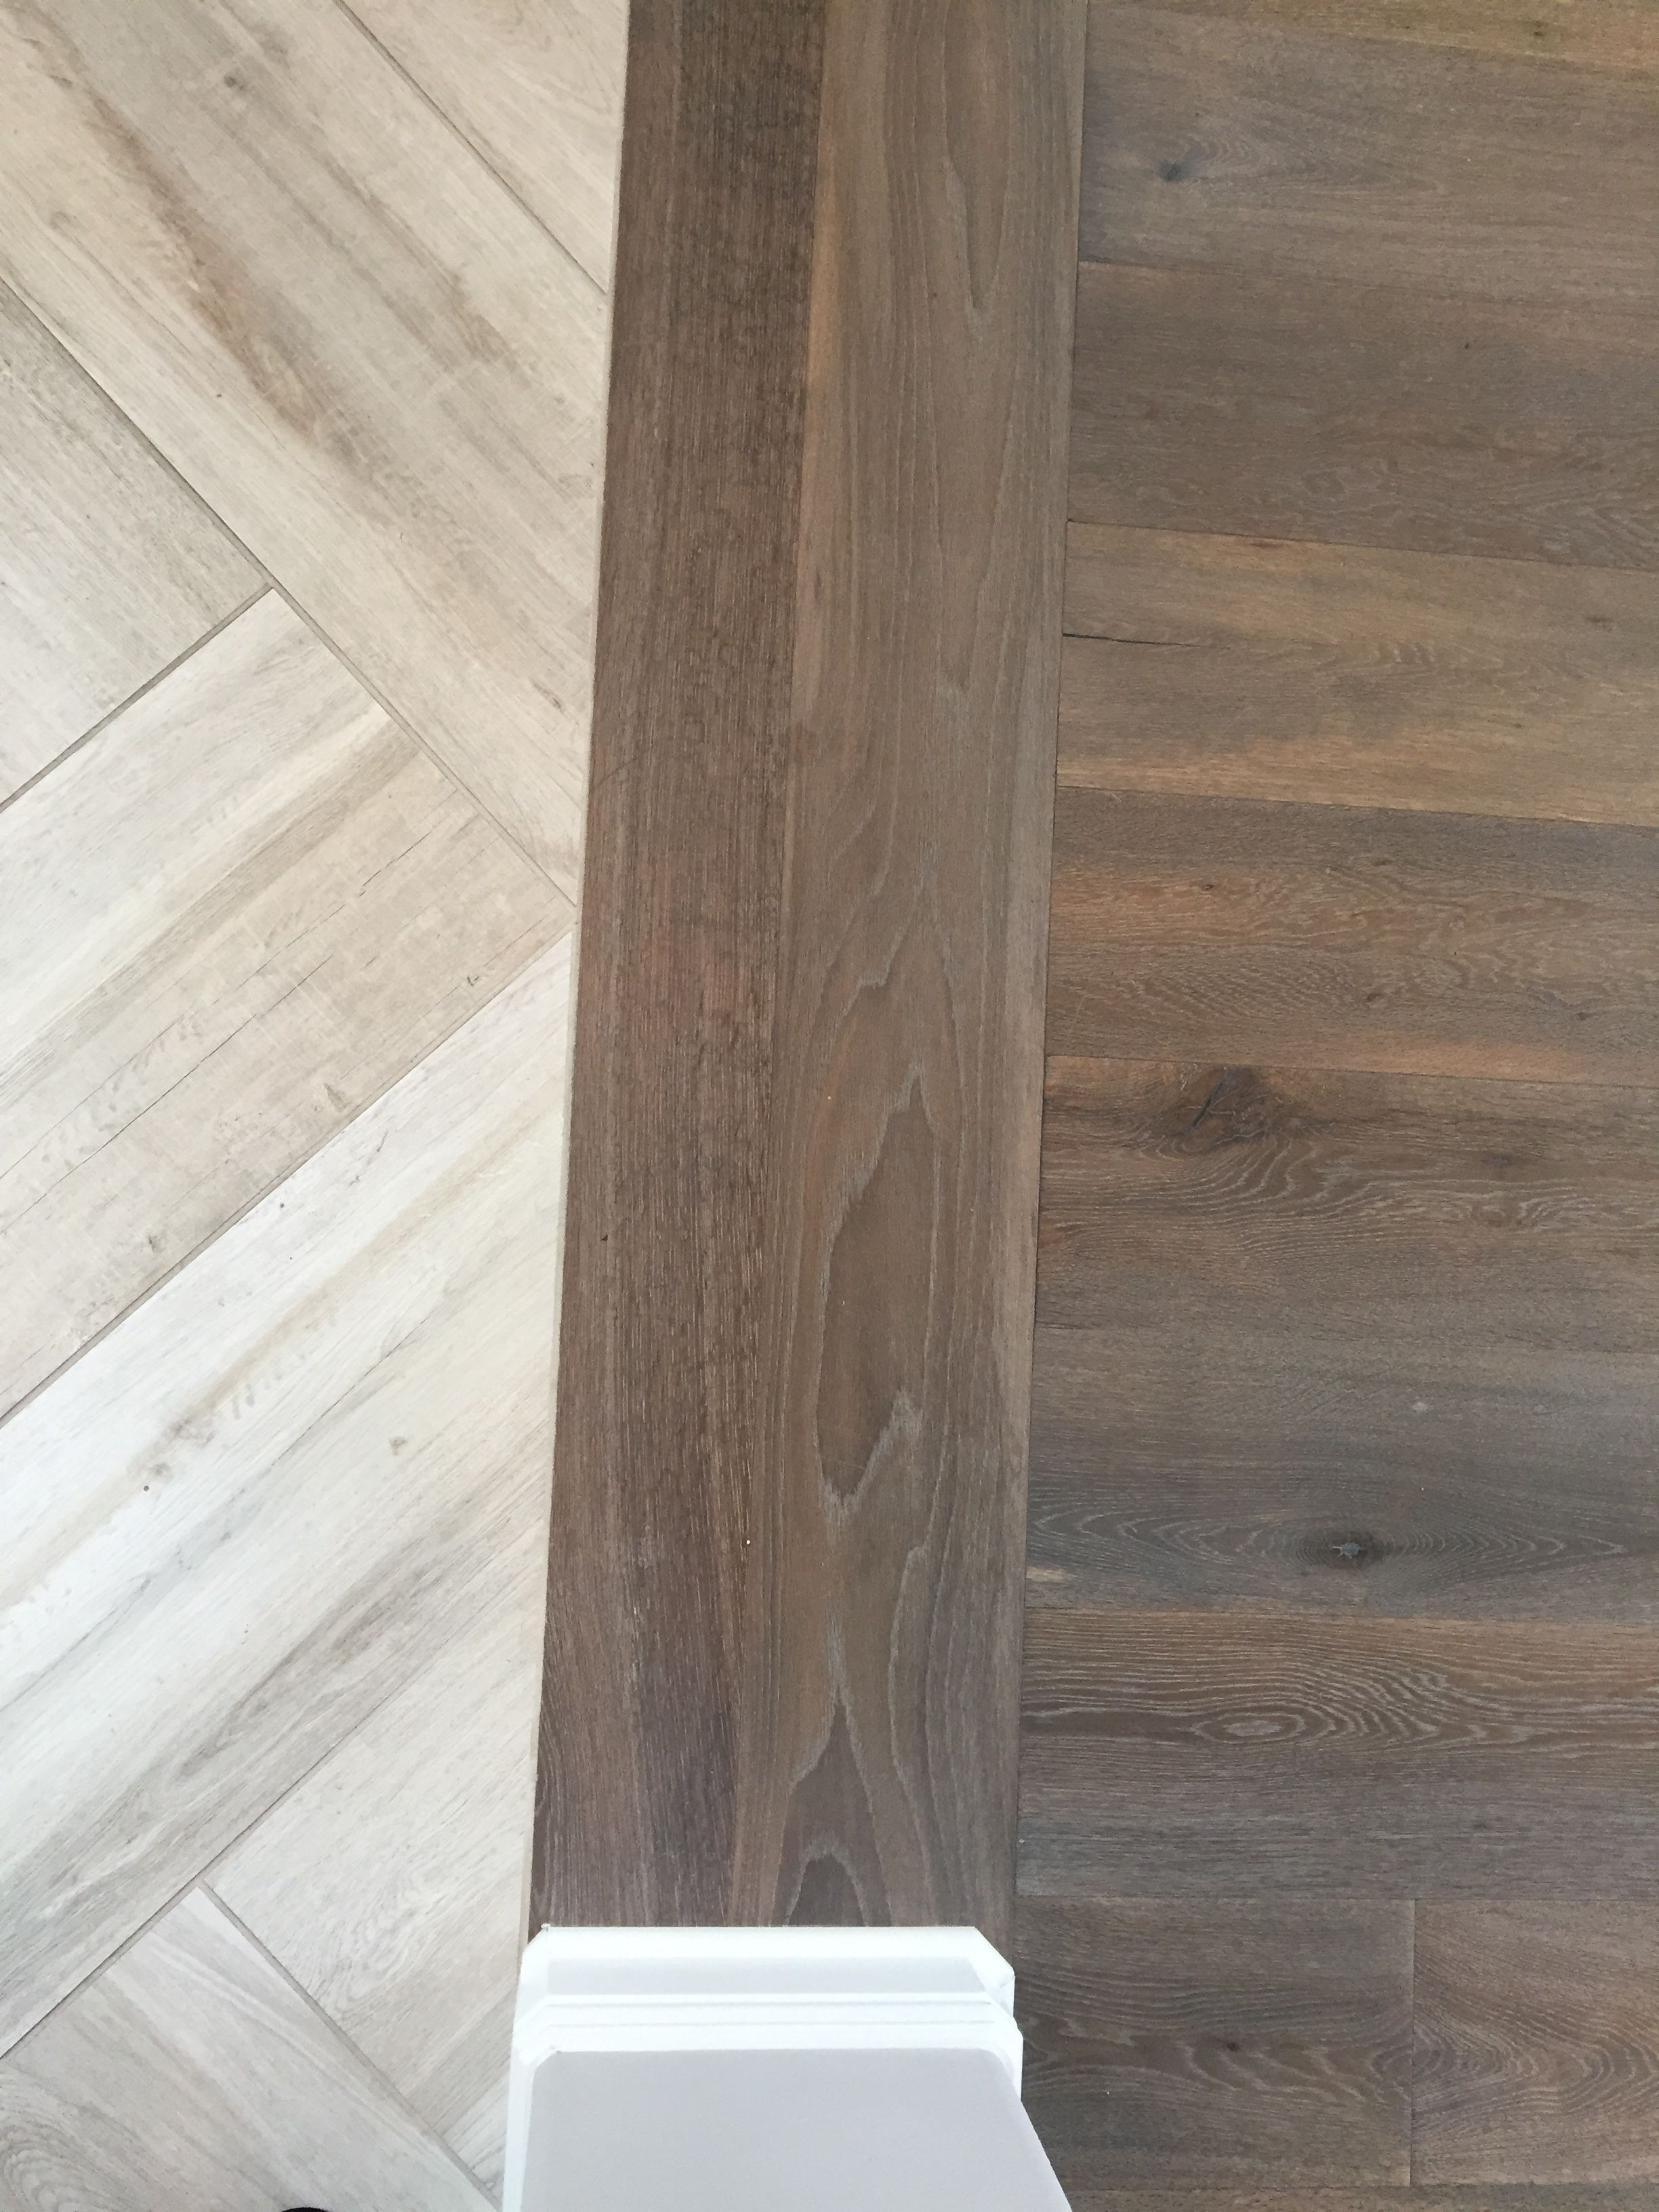 How Much Hardwood Floor Cost Of Floor Transition Laminate to Herringbone Tile Pattern Model Throughout Floor Transition Laminate to Herringbone Tile Pattern Herringbone Tile Pattern Herringbone Wood Floor